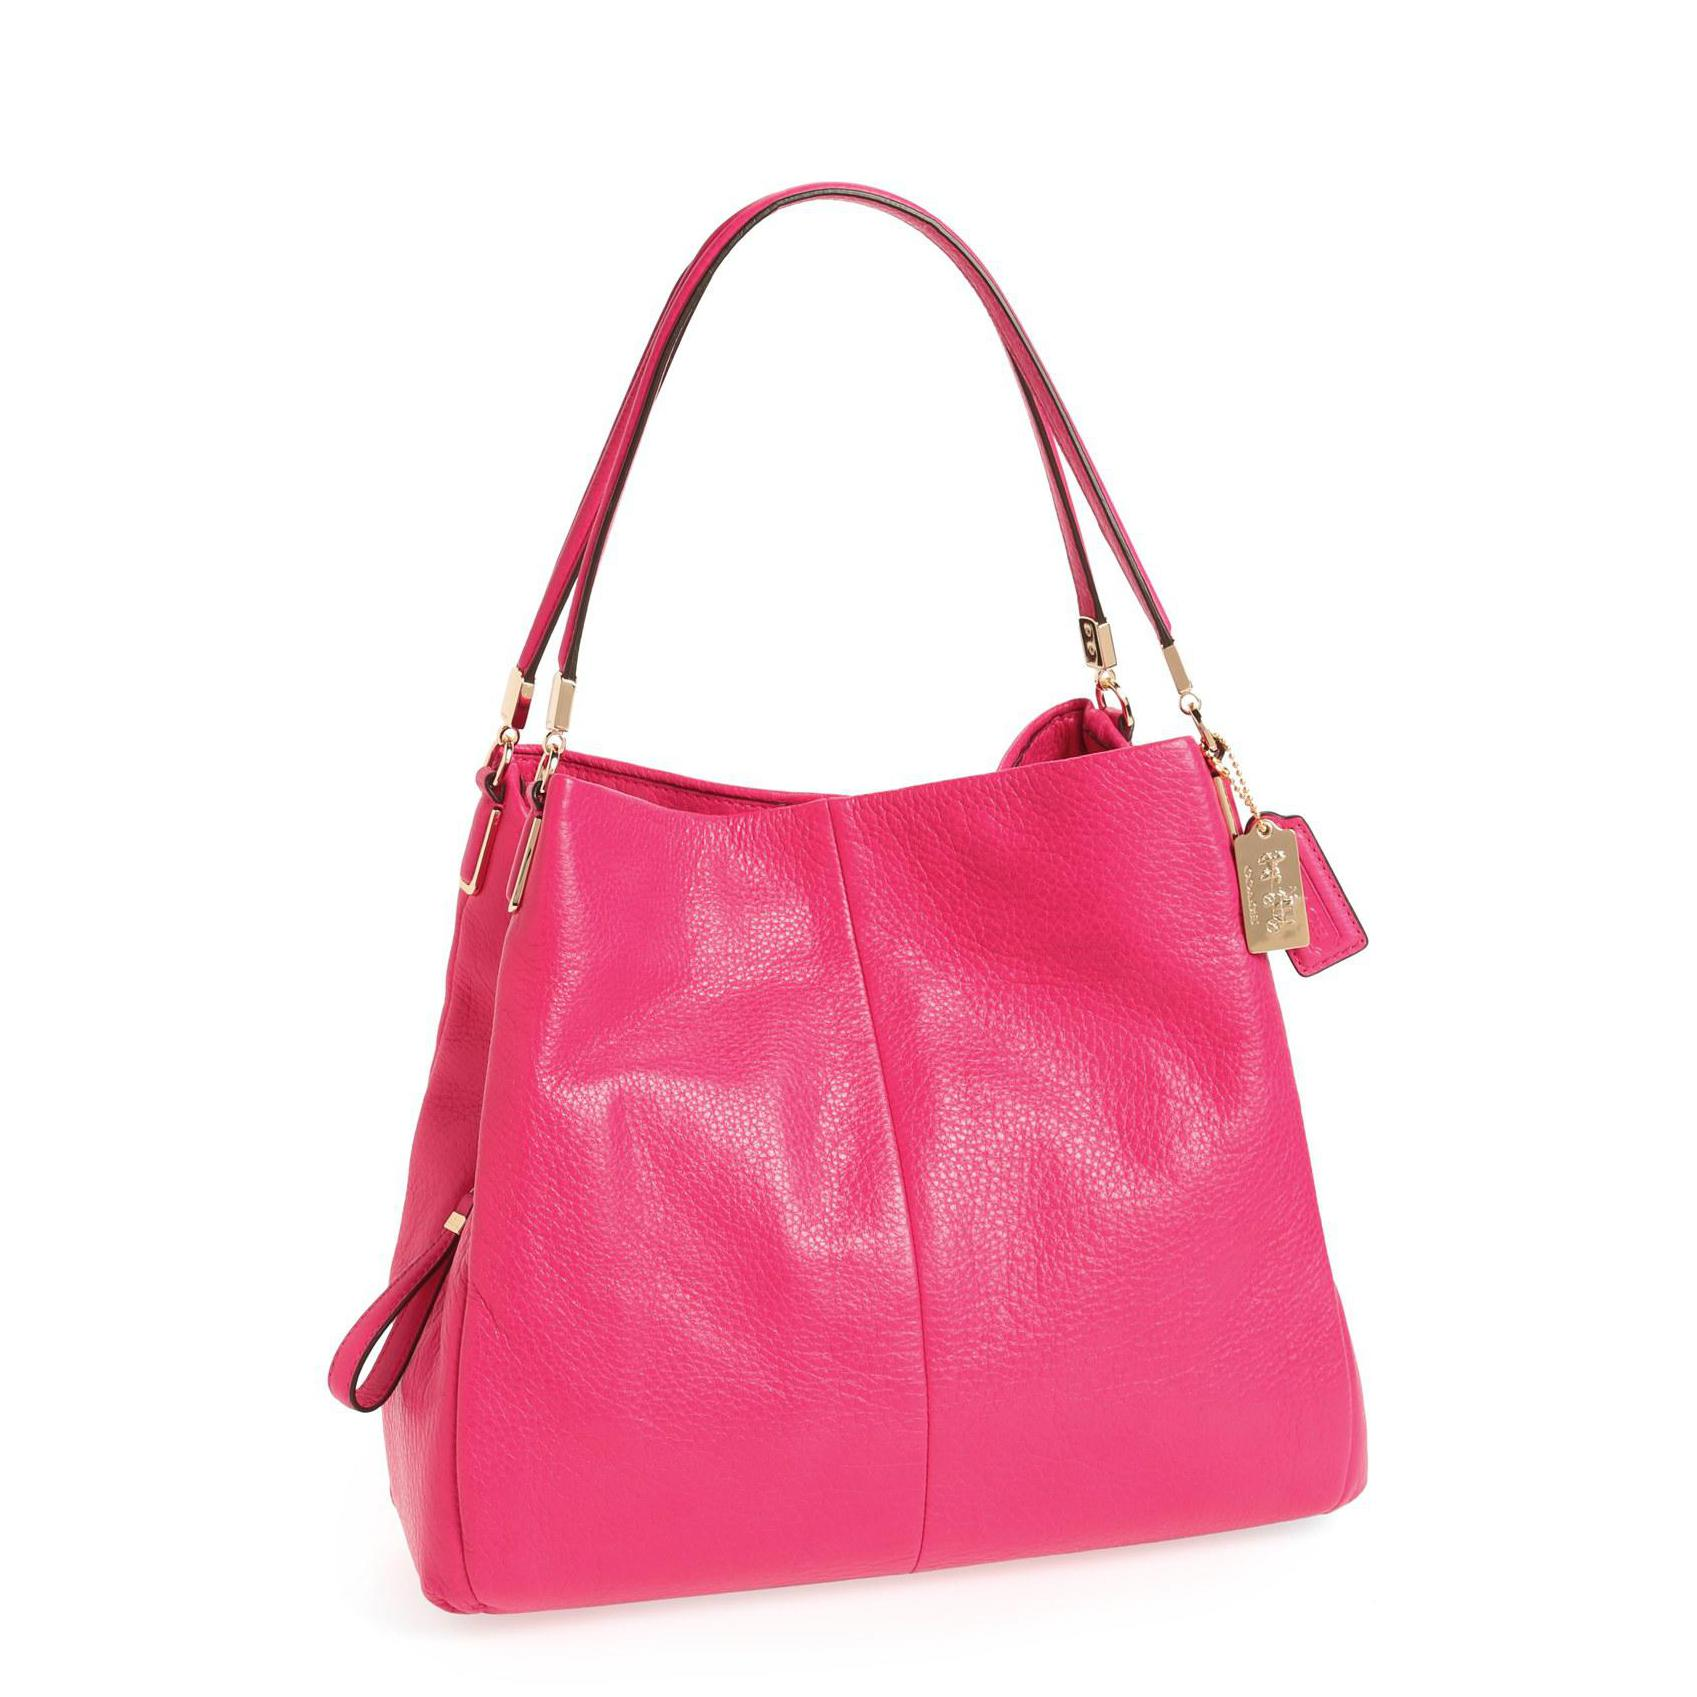 1485-COACH-Small-Madison-Phoebe-Leather-Shoulder-Bag-1